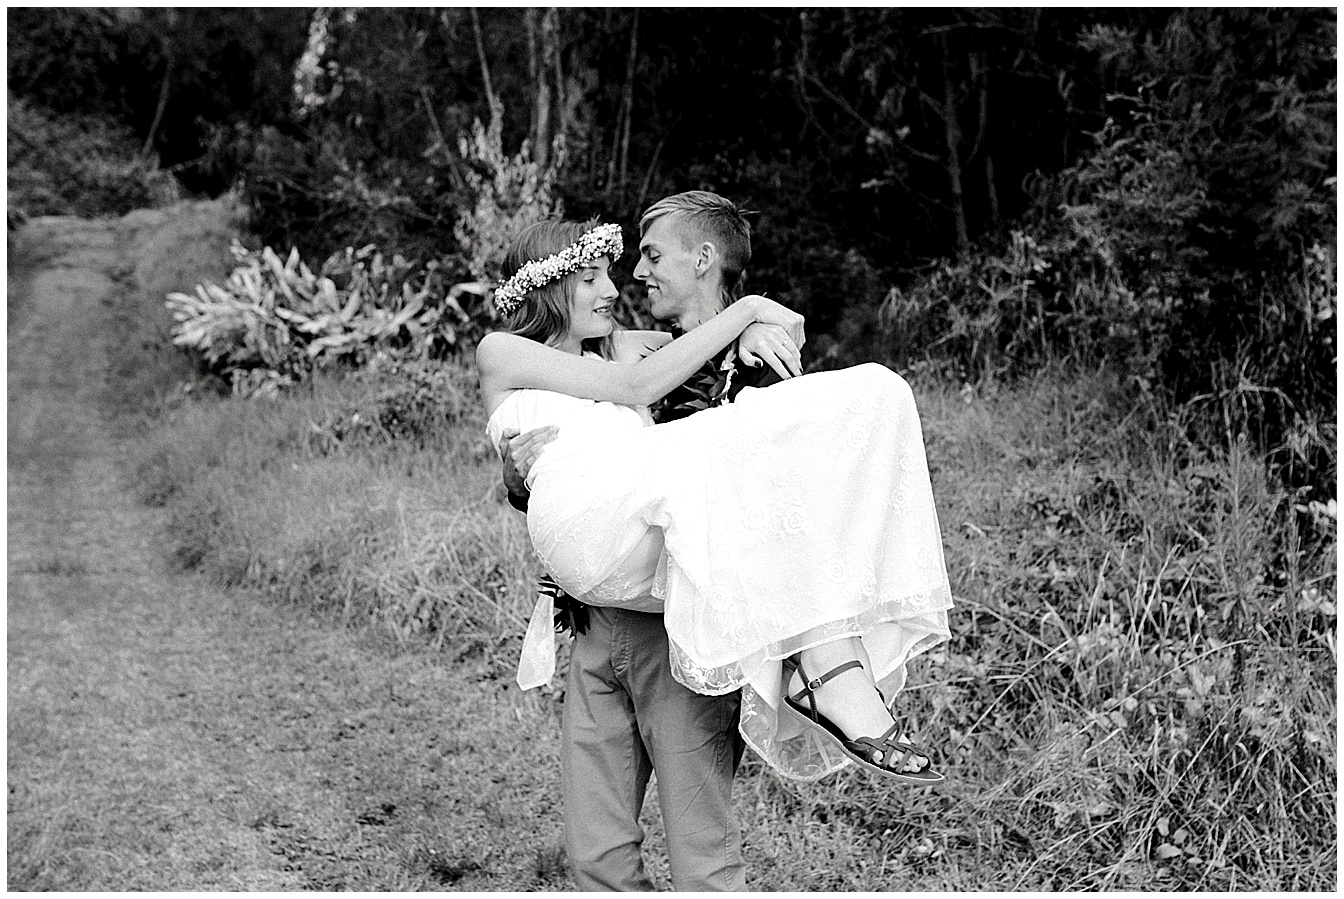 Maui groom carrying bride